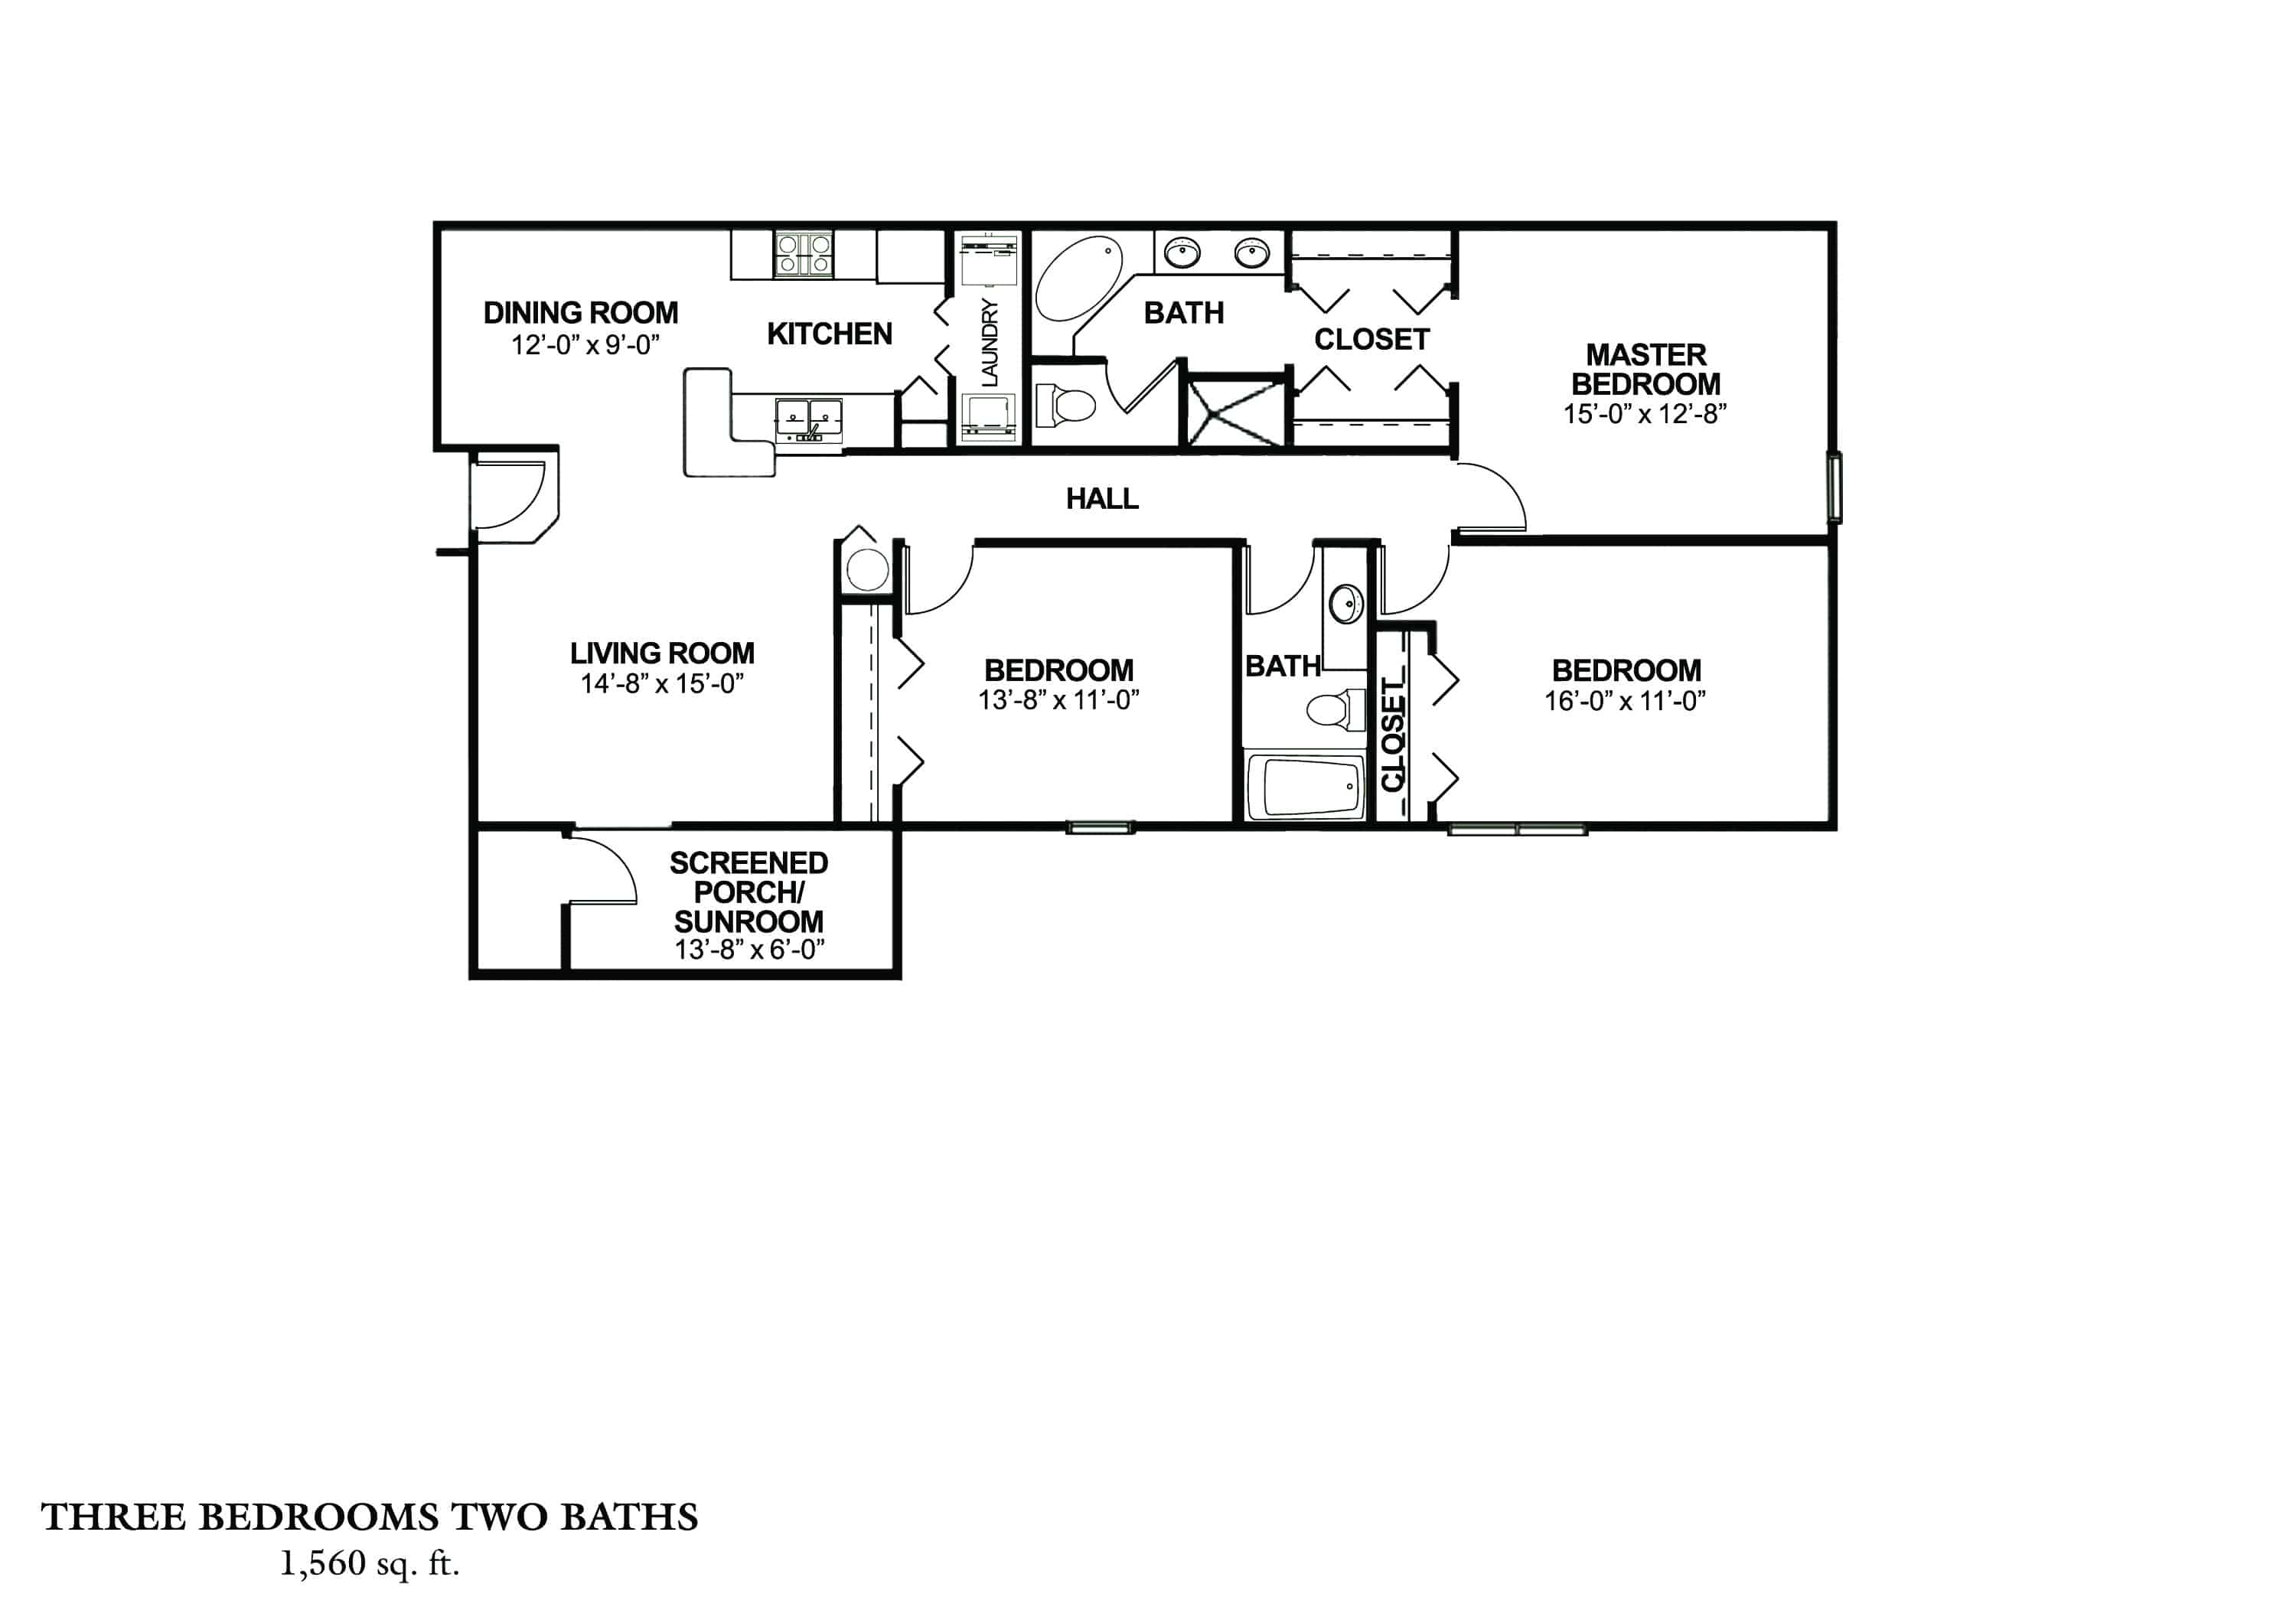 Three Bedroom - Phase I Approx. 1,560 sq. ft. Rent From $1,000 - $1,135 Beds 3 Baths 2